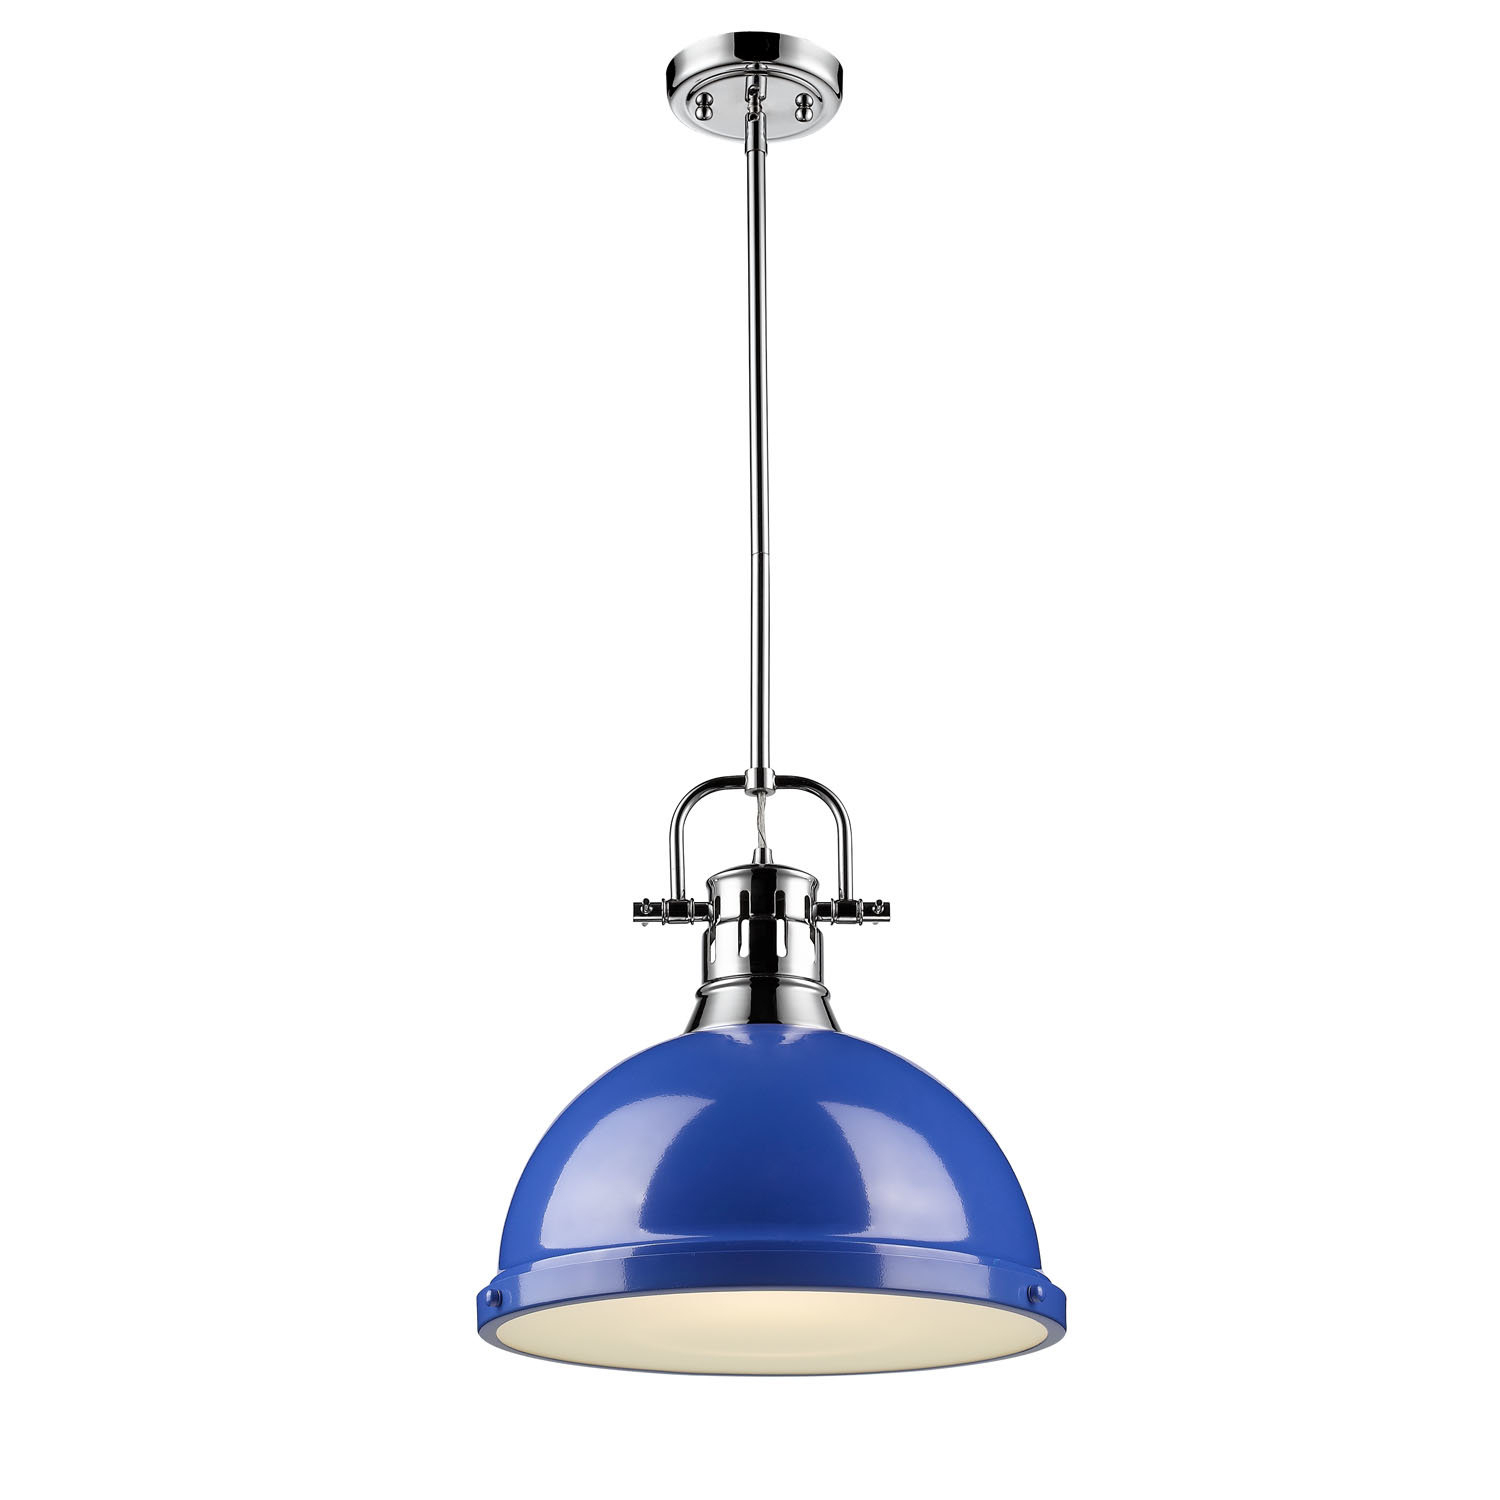 Bodalla 1 Light Single Dome Pendant With Regard To Bodalla 1 Light Single Bell Pendants (View 15 of 30)